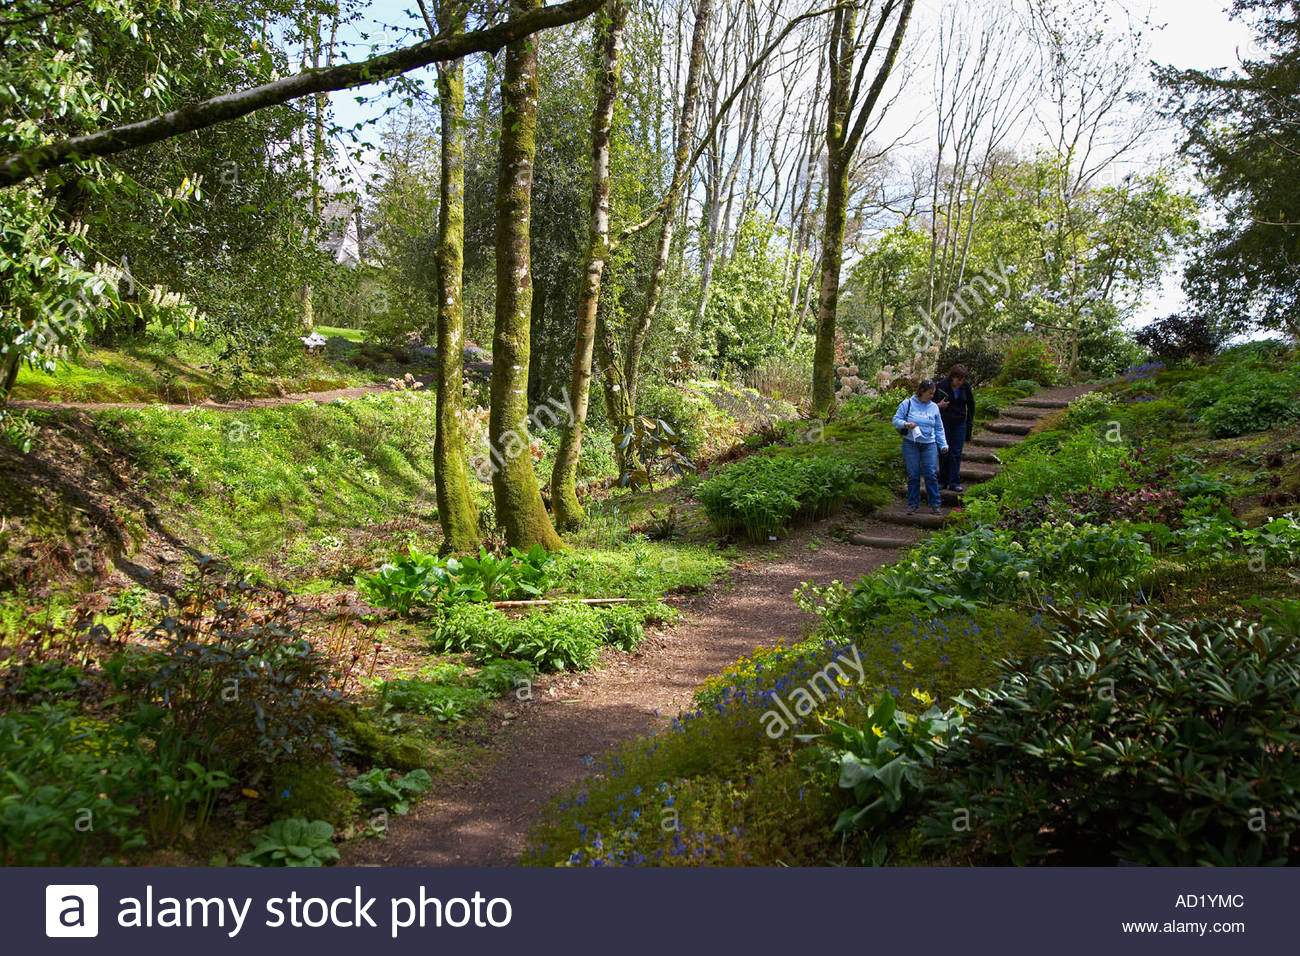 Aberglasney Gardens Llandeilo, Aberglasney Gardens, Llandeilo, West Wales, UK Stock Photo ...